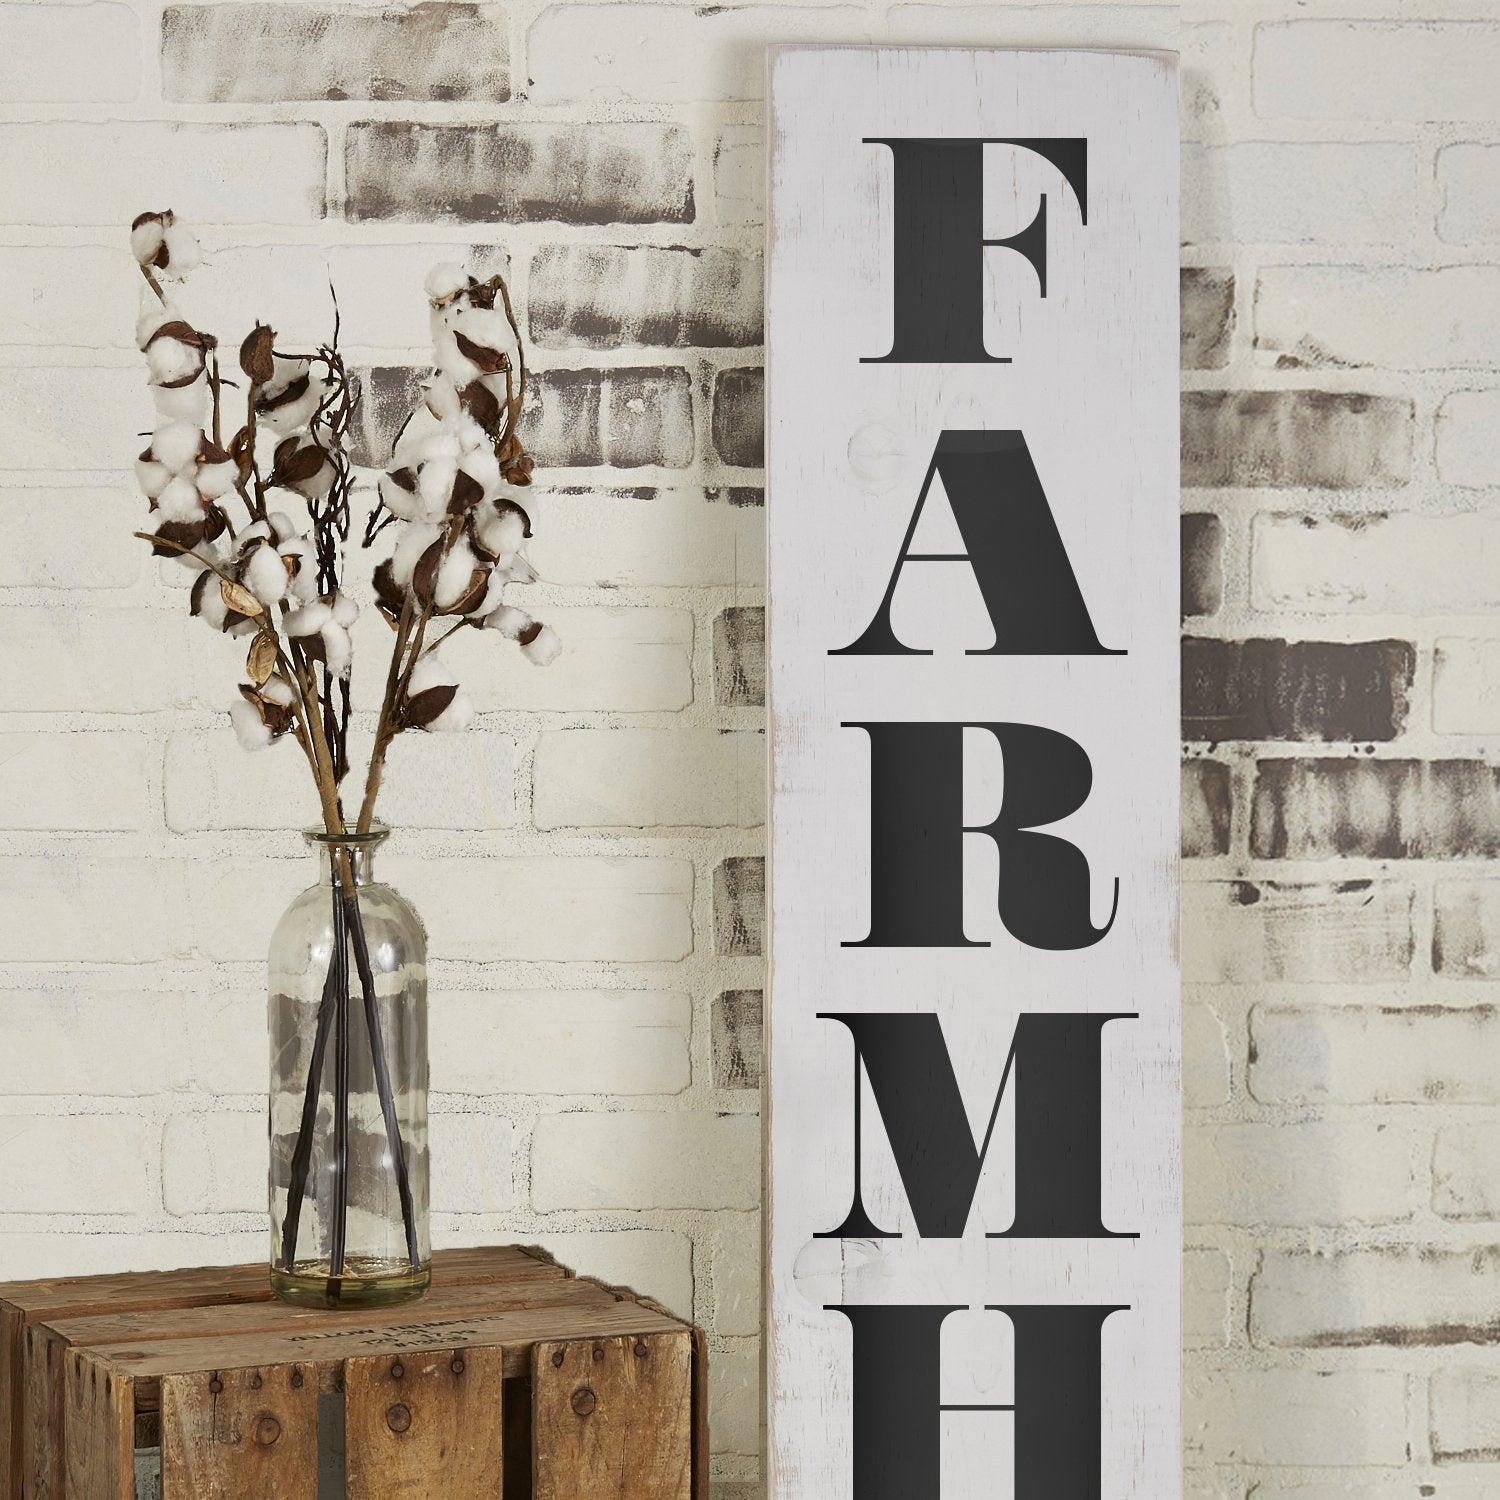 Reusable 5 inch Alphabet letter stencils for DIY Farmhouse wood signs, Ideal use: Vertical porch signs | Vintage, Country, Custom design, last name stencil, DIY Farmhouse Vertical Front Porch Leaner Signs